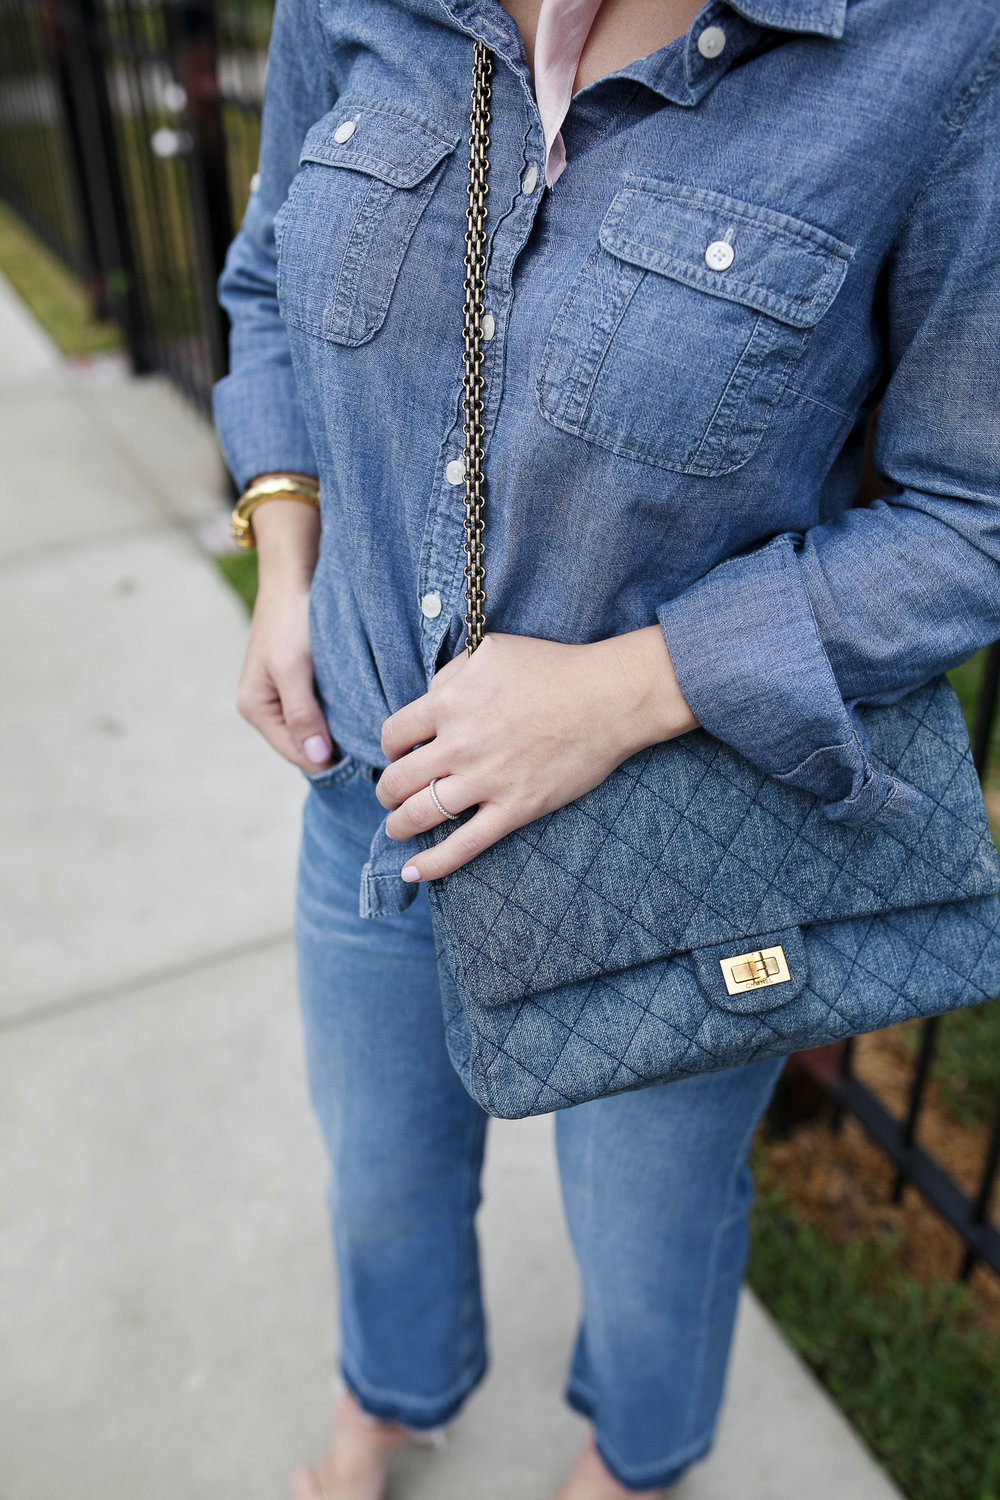 All denim look- Top Shop jeans and denim Chanel purse 8.jpg